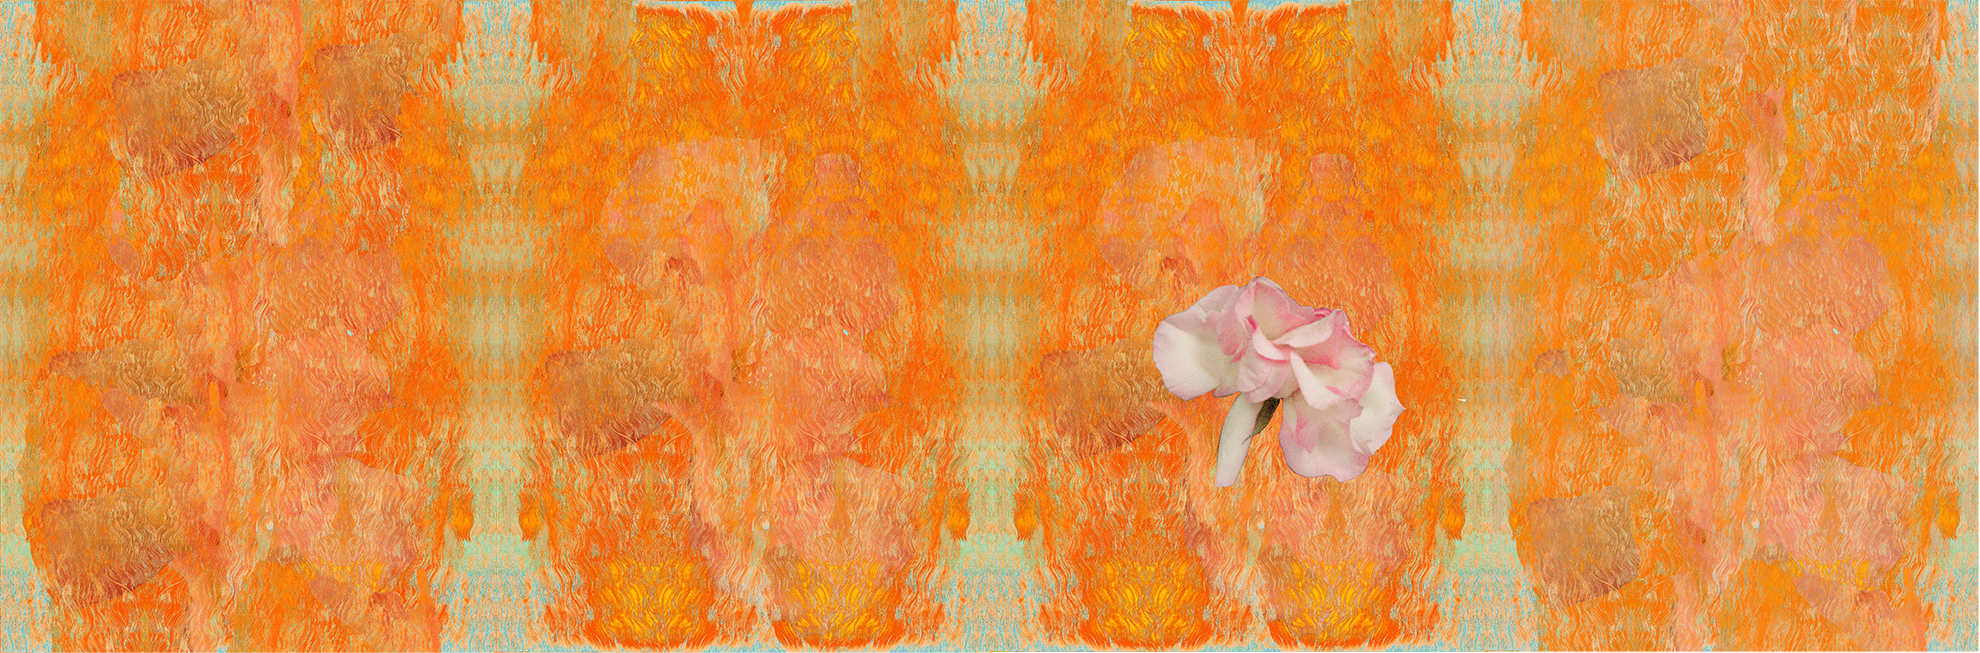 They Will Become Pink Mist , 2016, Pigment print, 17 x 63 inches